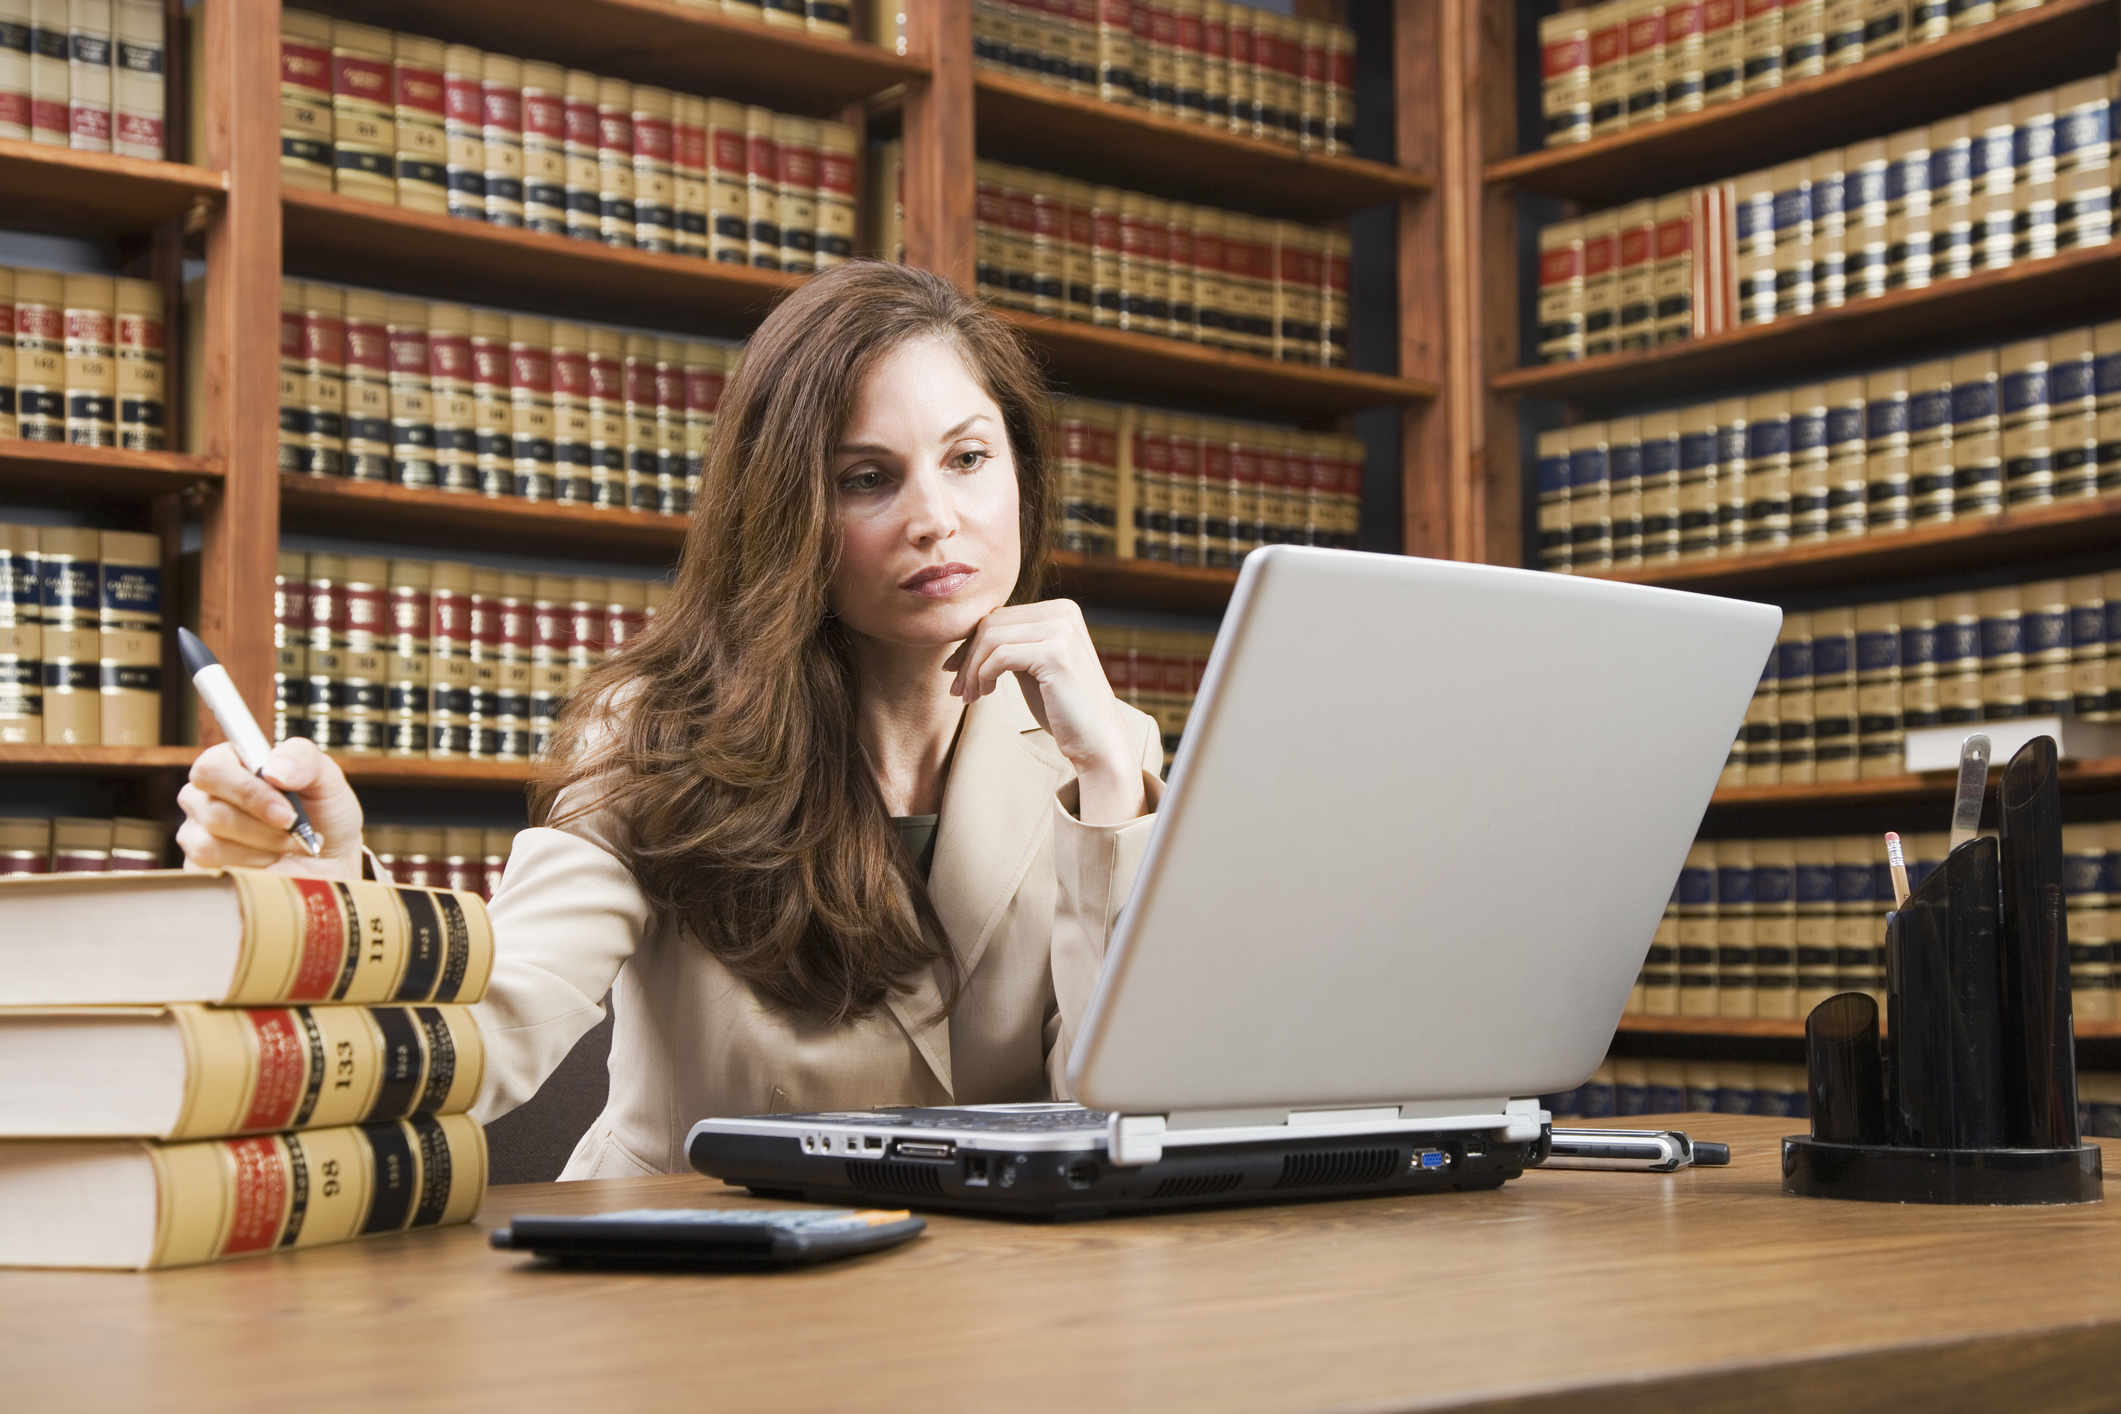 10 Tips To Build A Strong Law School Application